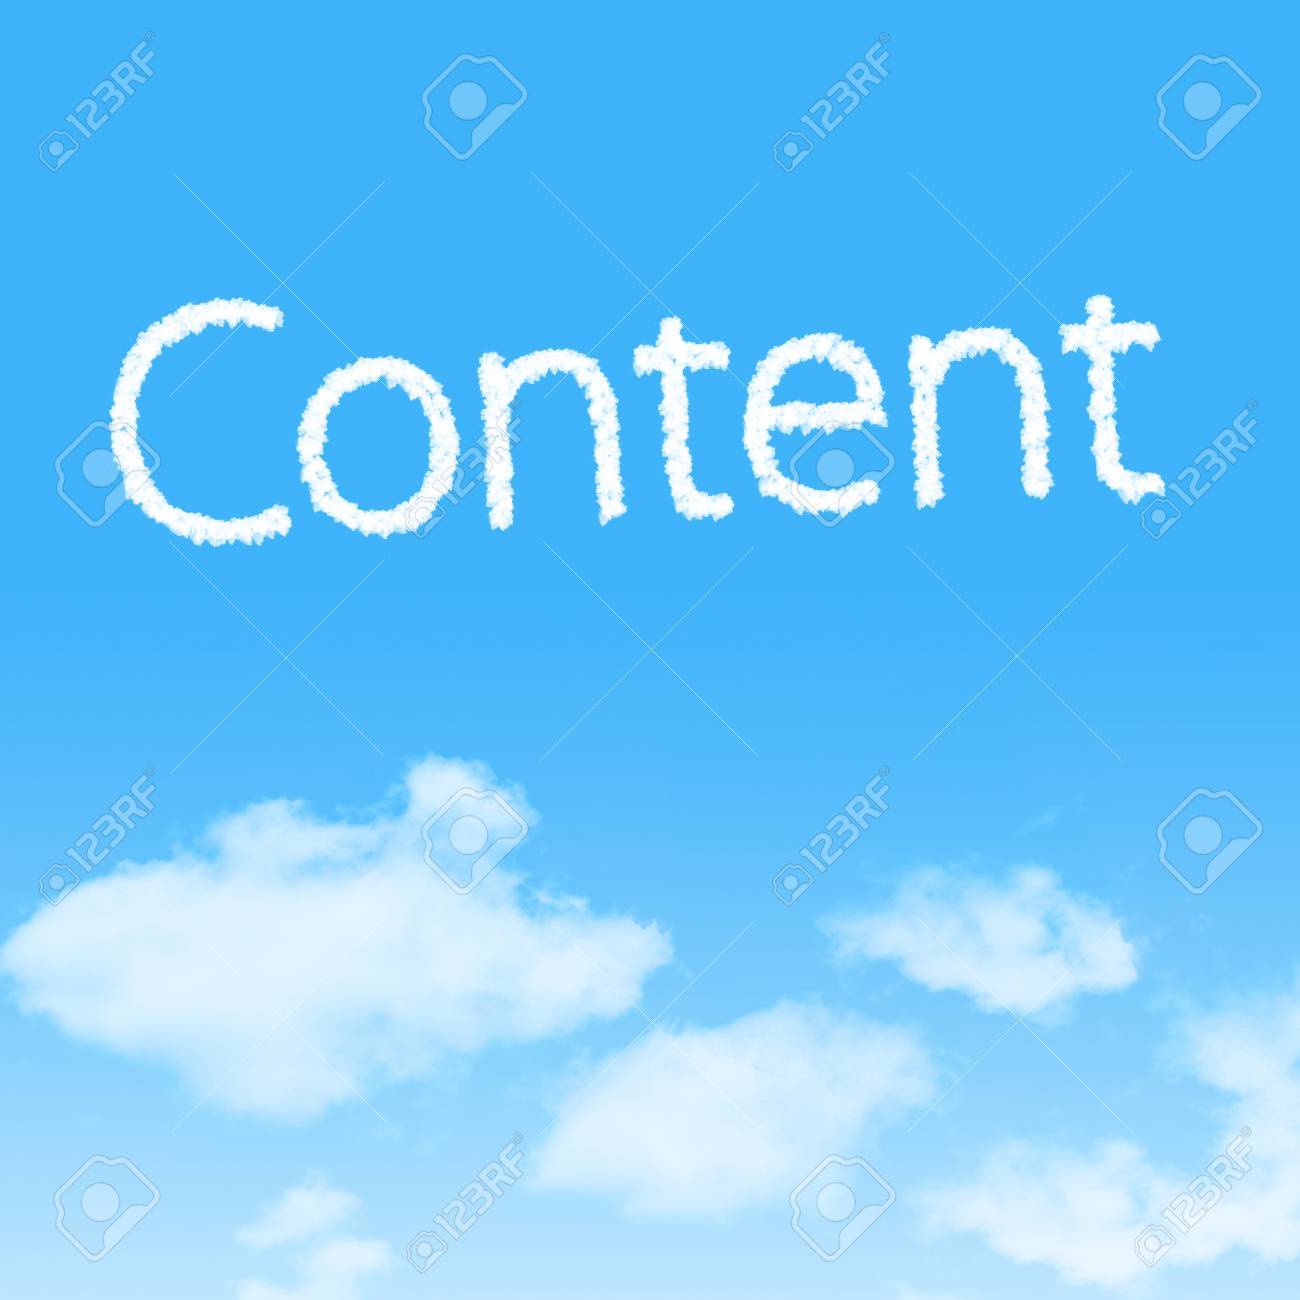 Content cloud icon with design on blue sky background Stock Photo - 27242464